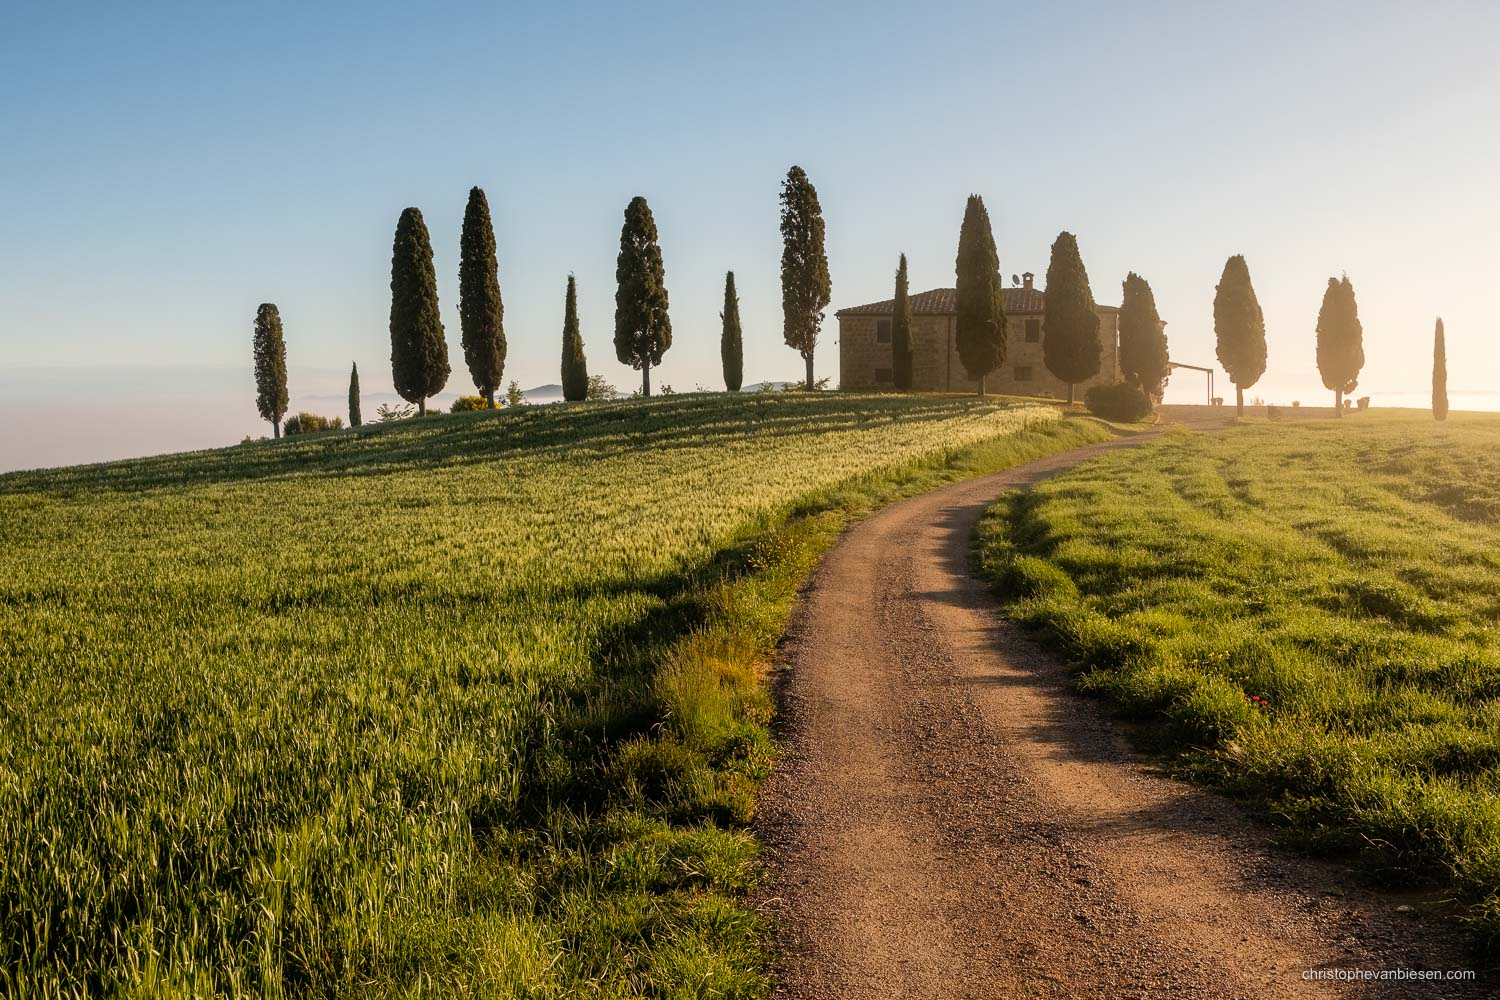 Tuscany - Italy - Dawn in Italy's Tuscany, in the Val d'Orcia near San Quirico d'Orcia - Southern Life